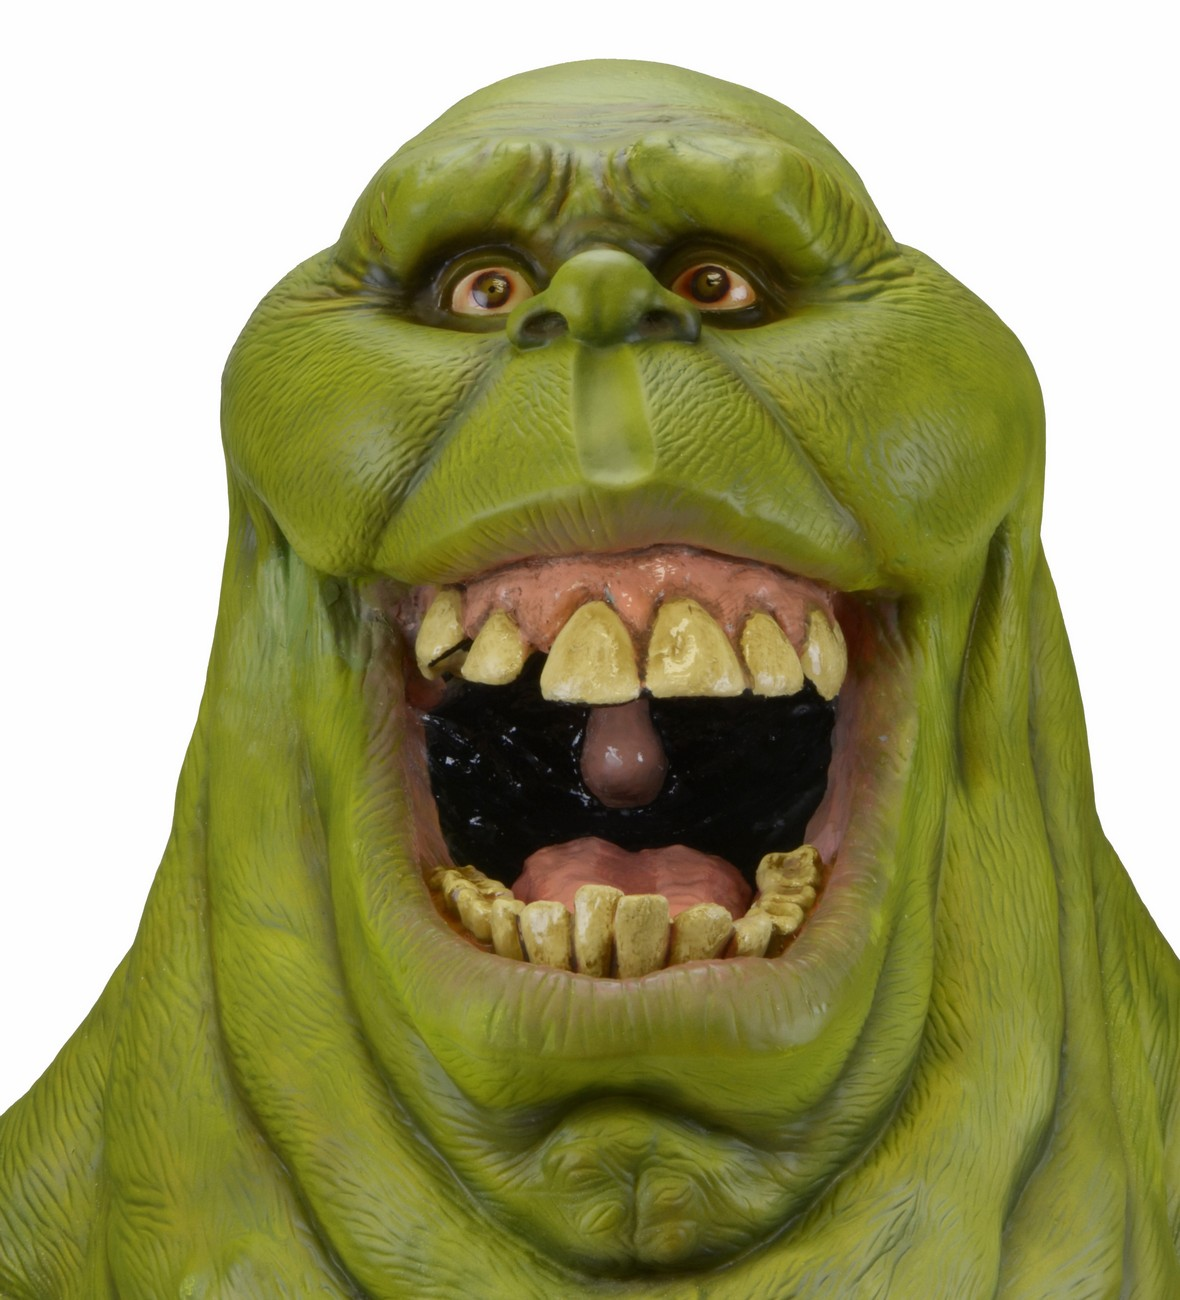 DISCONTINUED Ghostbusters  Large Scale Foam Figure  Slimer